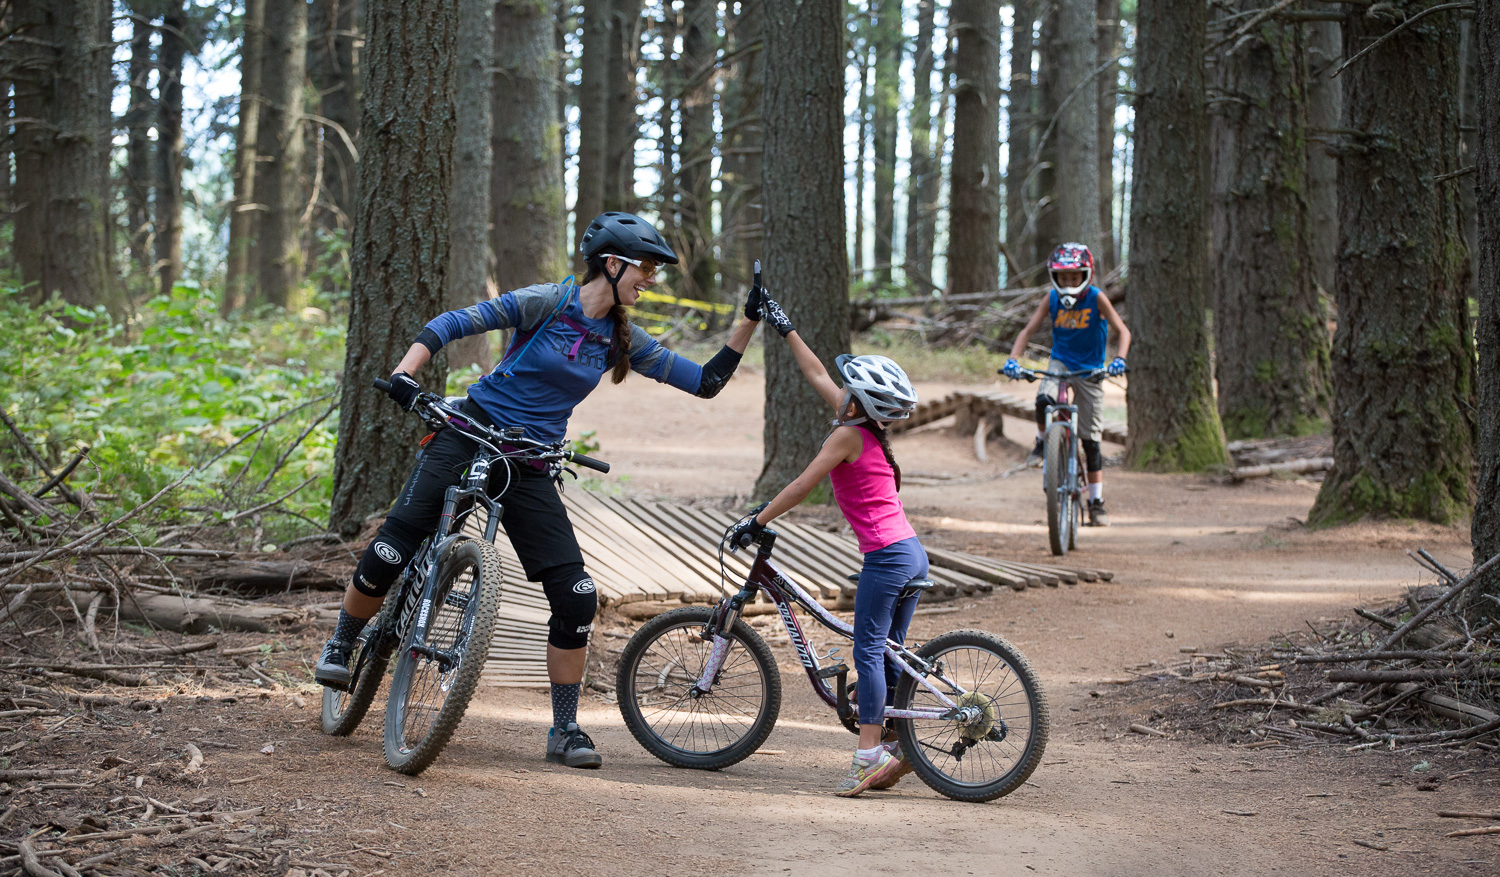 Hi-fives at the Family Man Skills Area at Post Canyon in Hood River, Oregon.